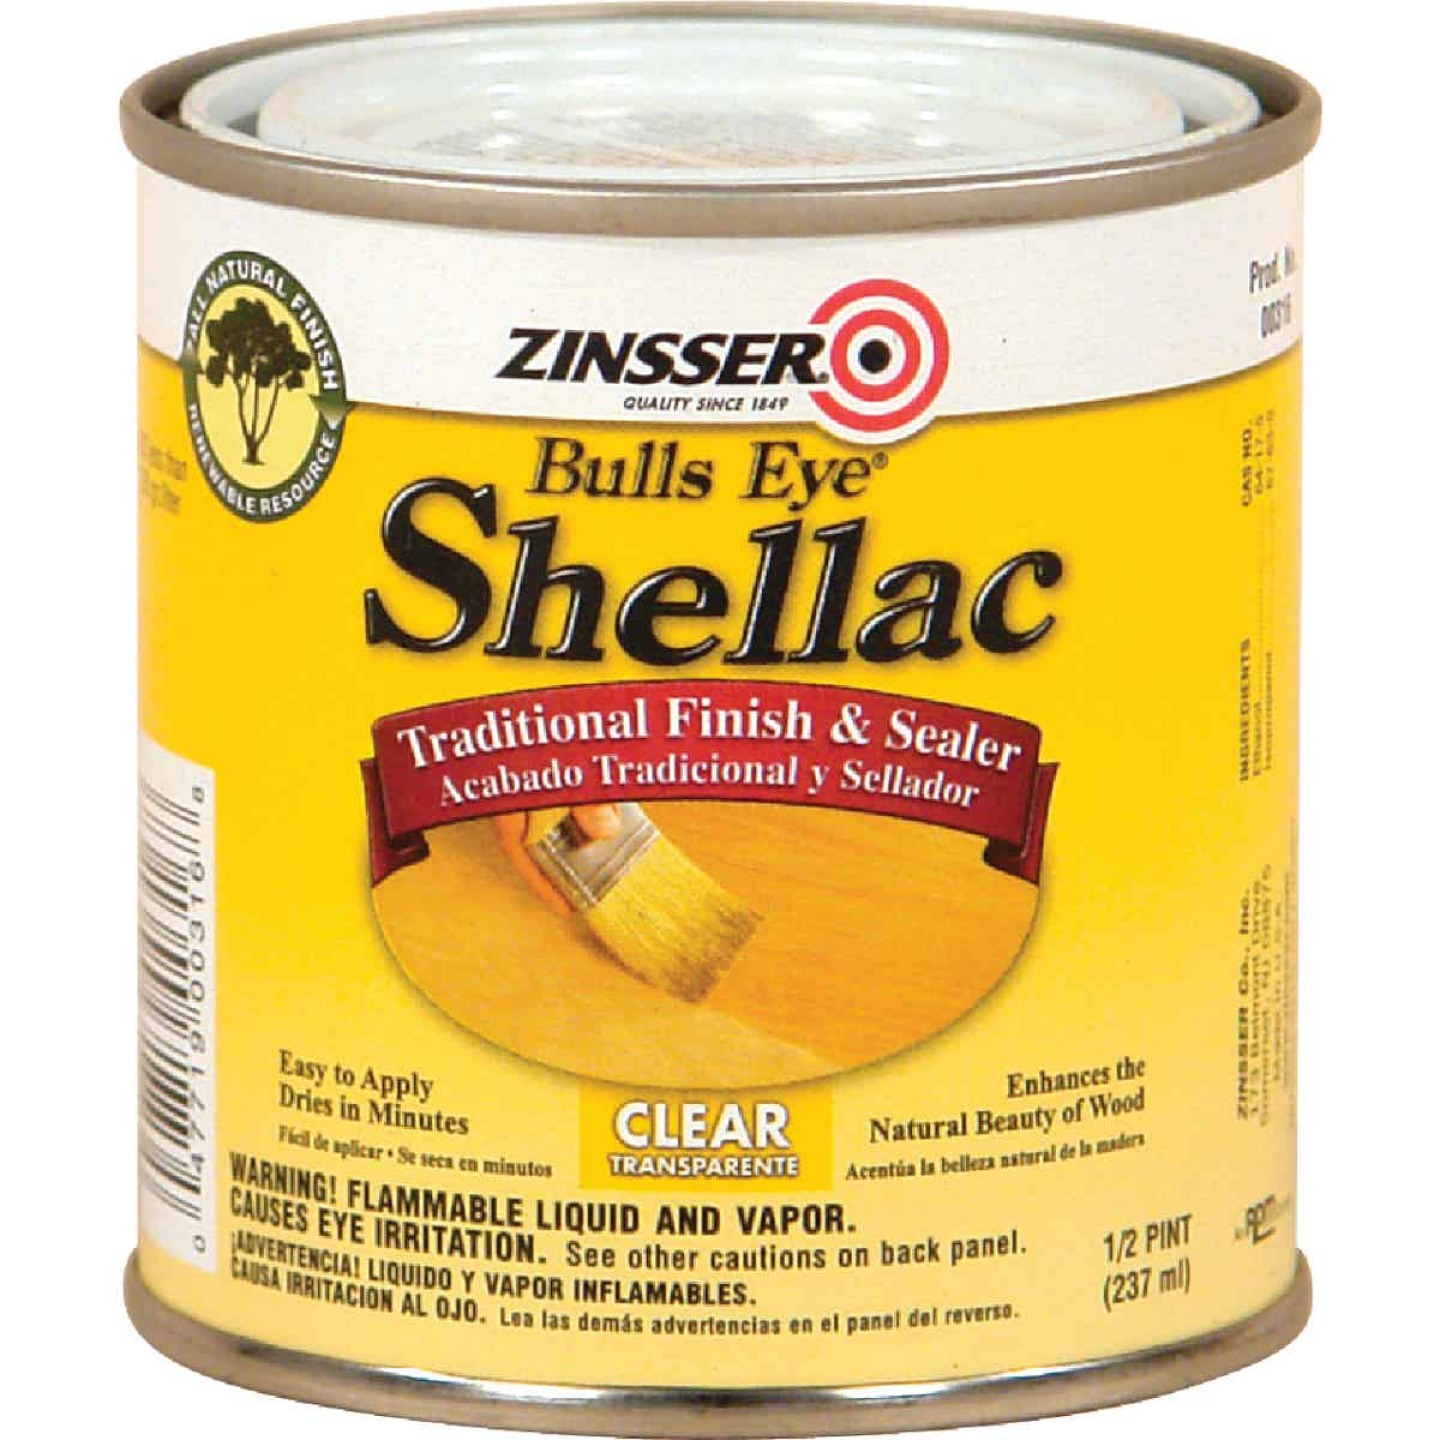 Zinsser Bulls Eye Clear Shellac, 1/2 Pt. Image 1